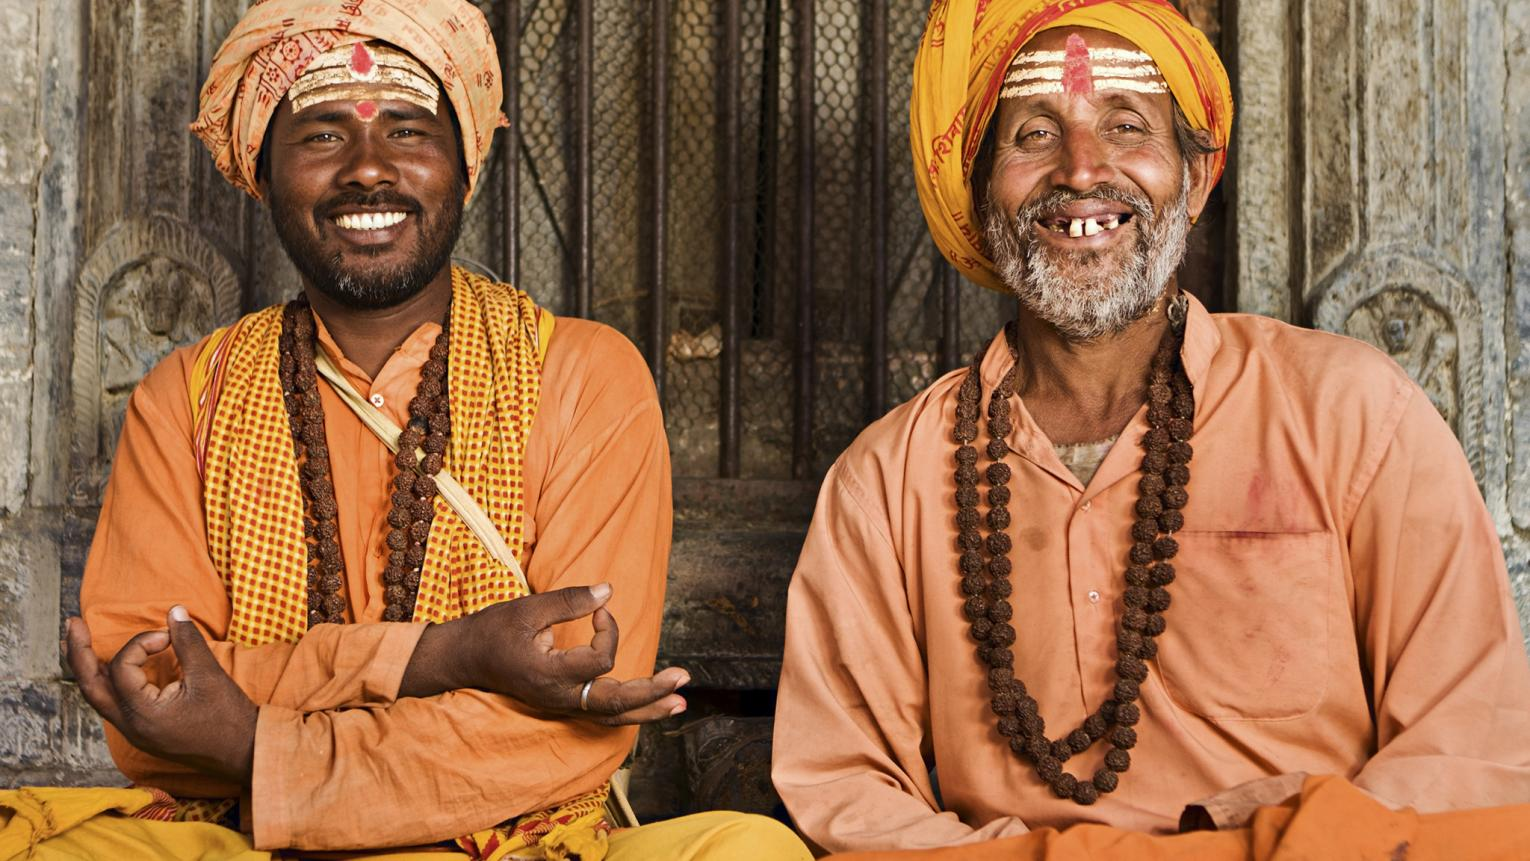 Two Indian men dressed in orange clothes socialize together.